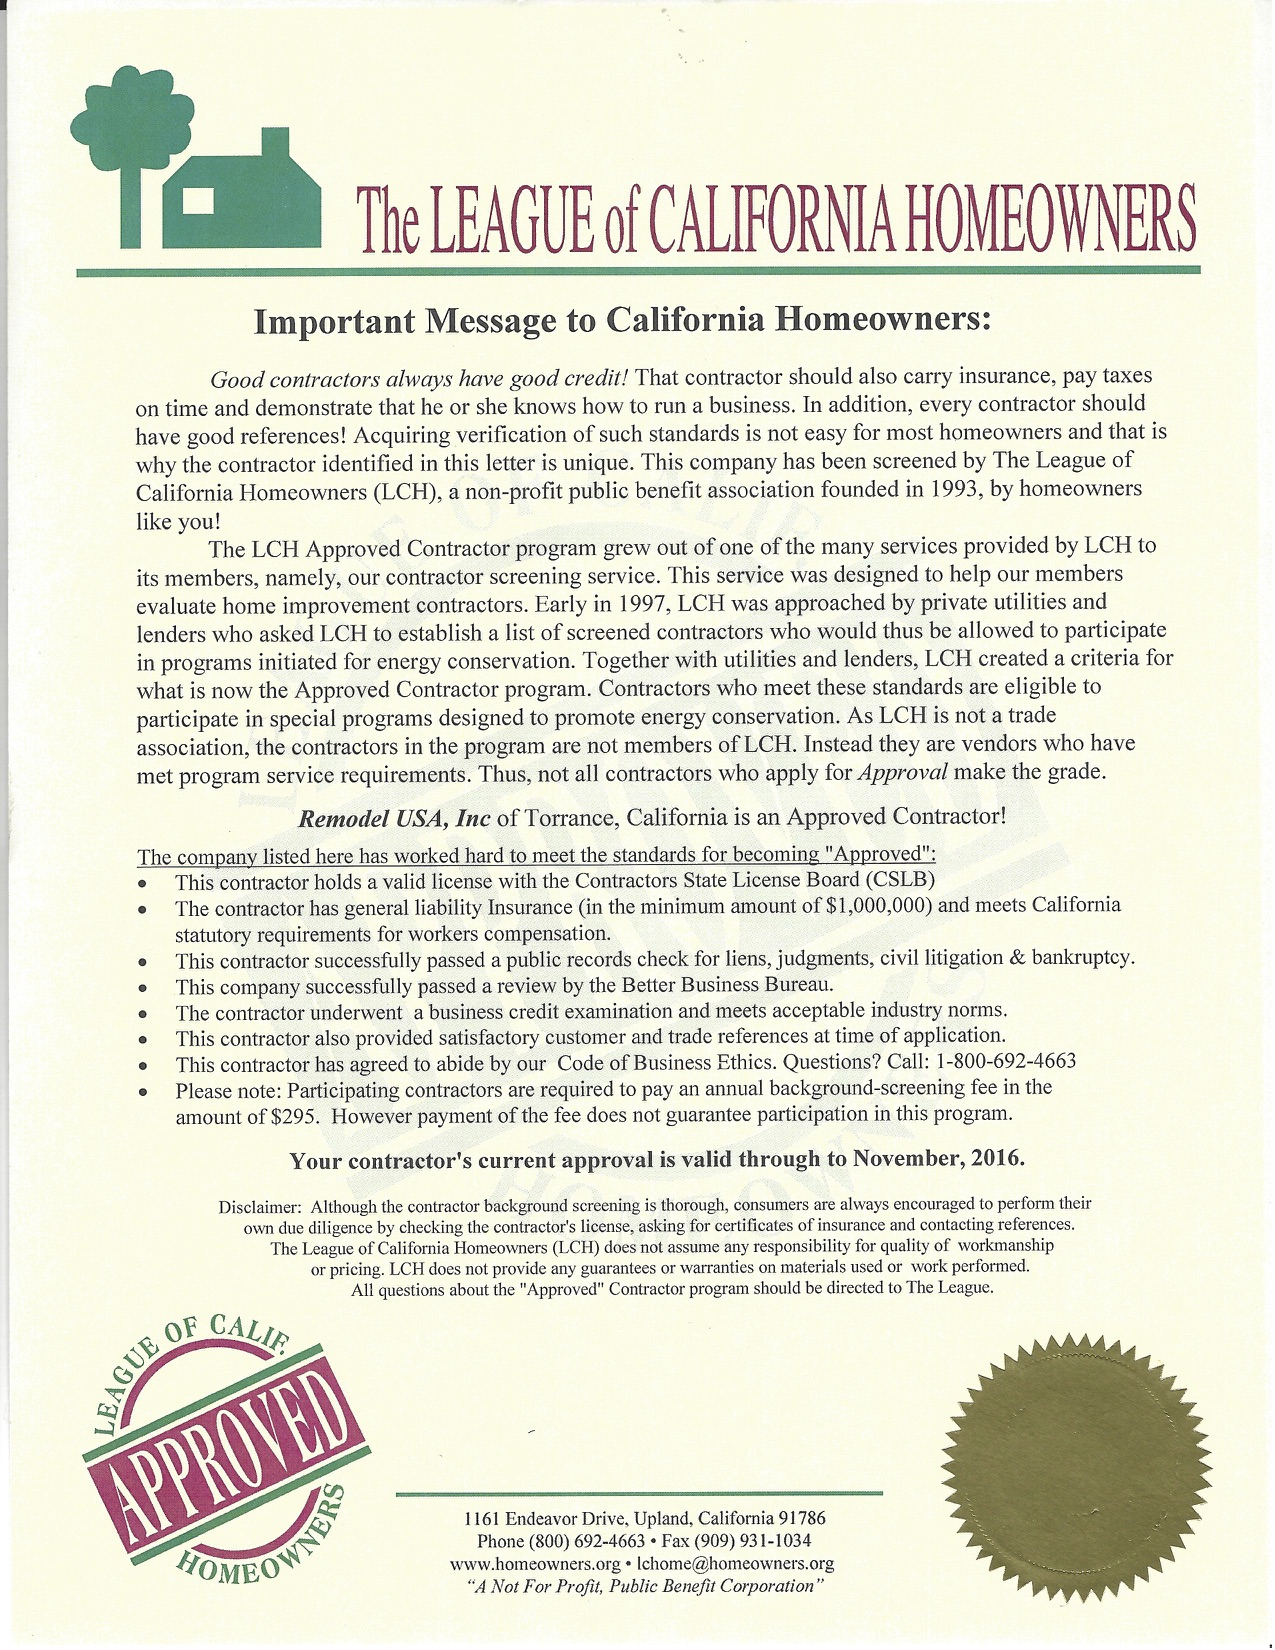 League of Claifornia Homeowners Letter